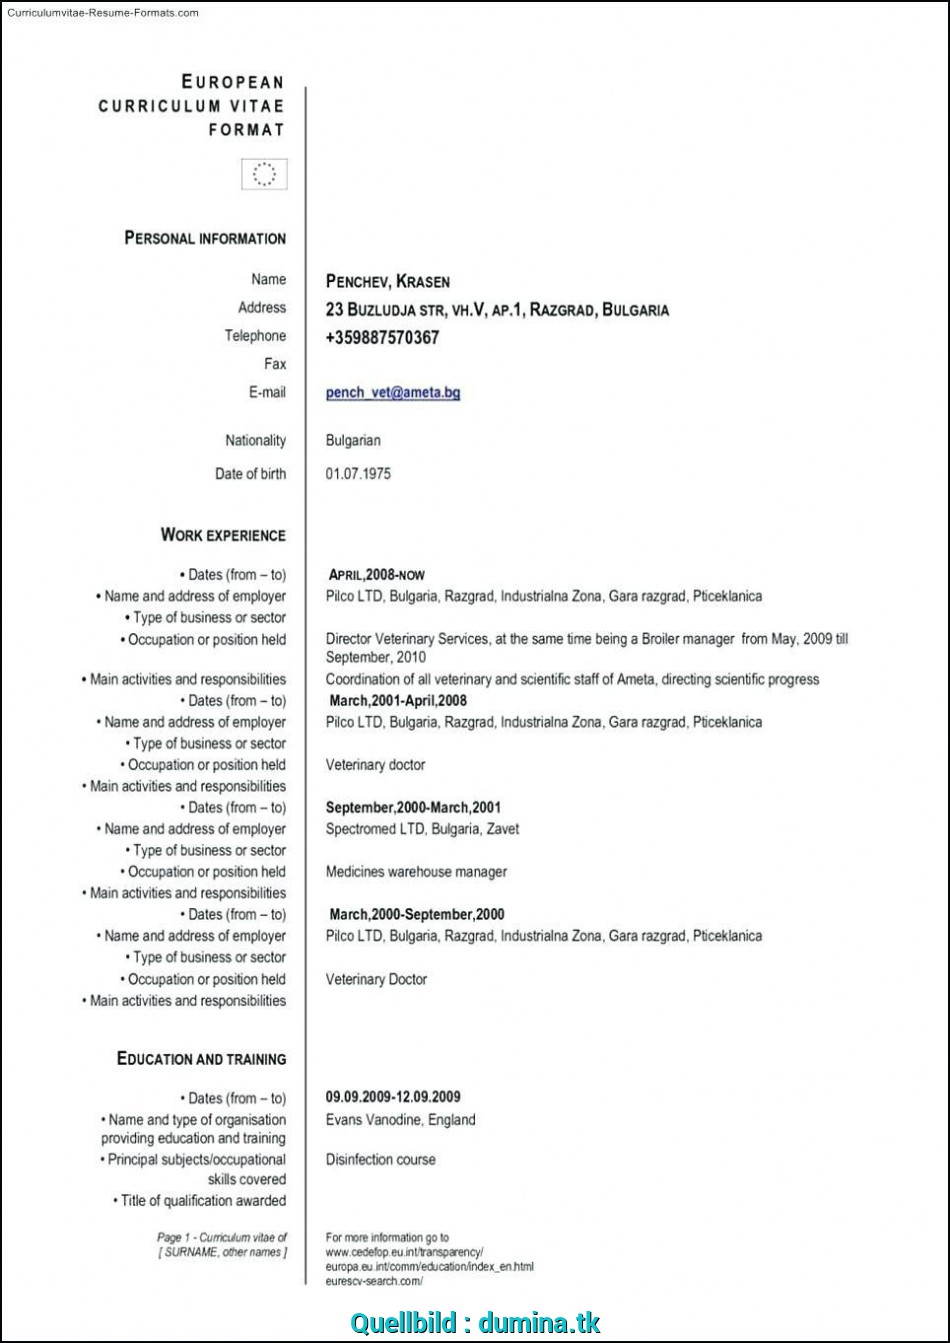 Positiv ... By Nathen Grimes From Public Domain That, Find It From Google Or Other Search Engine, It'S Posted Under Topic Europass Cv Template, Download, Europass Download Doc